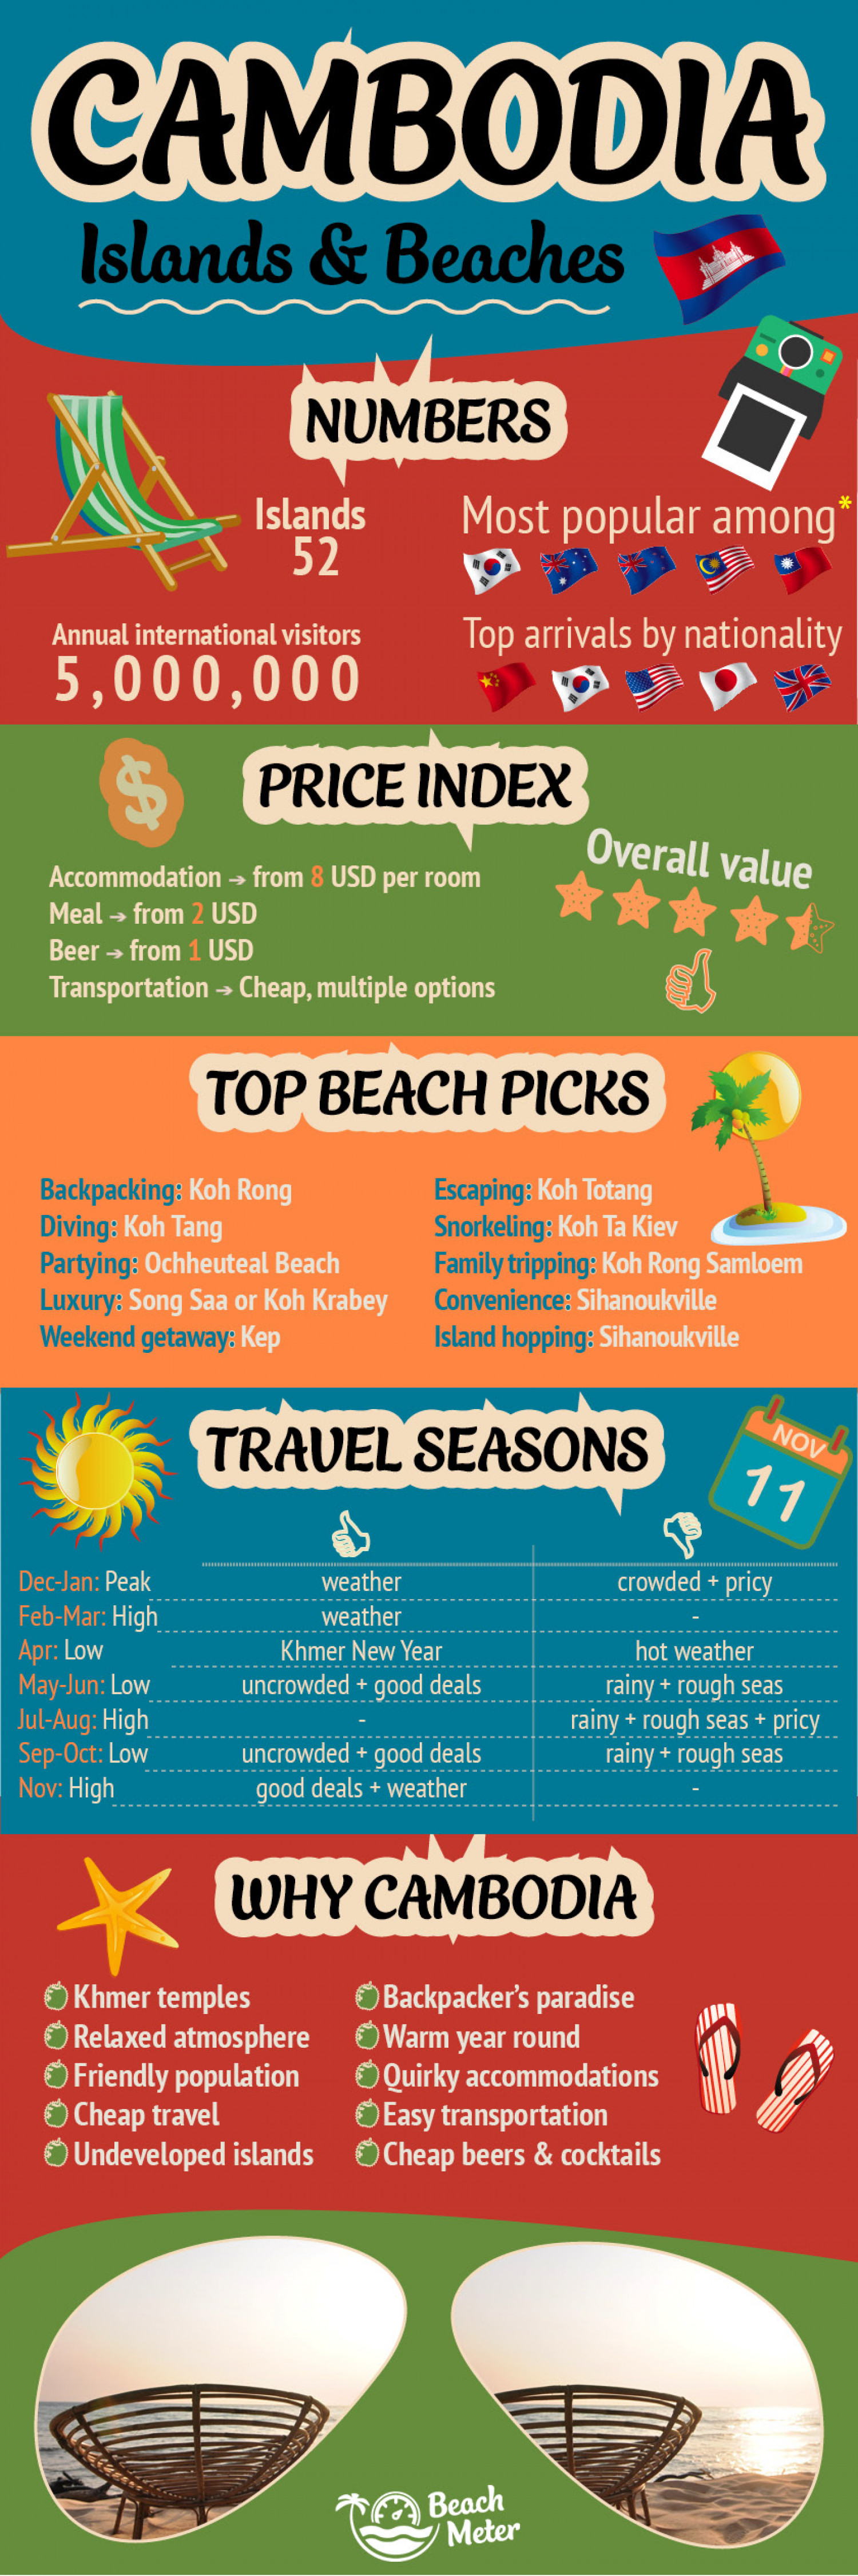 Cambodia Travel Guide Infographic Infographic